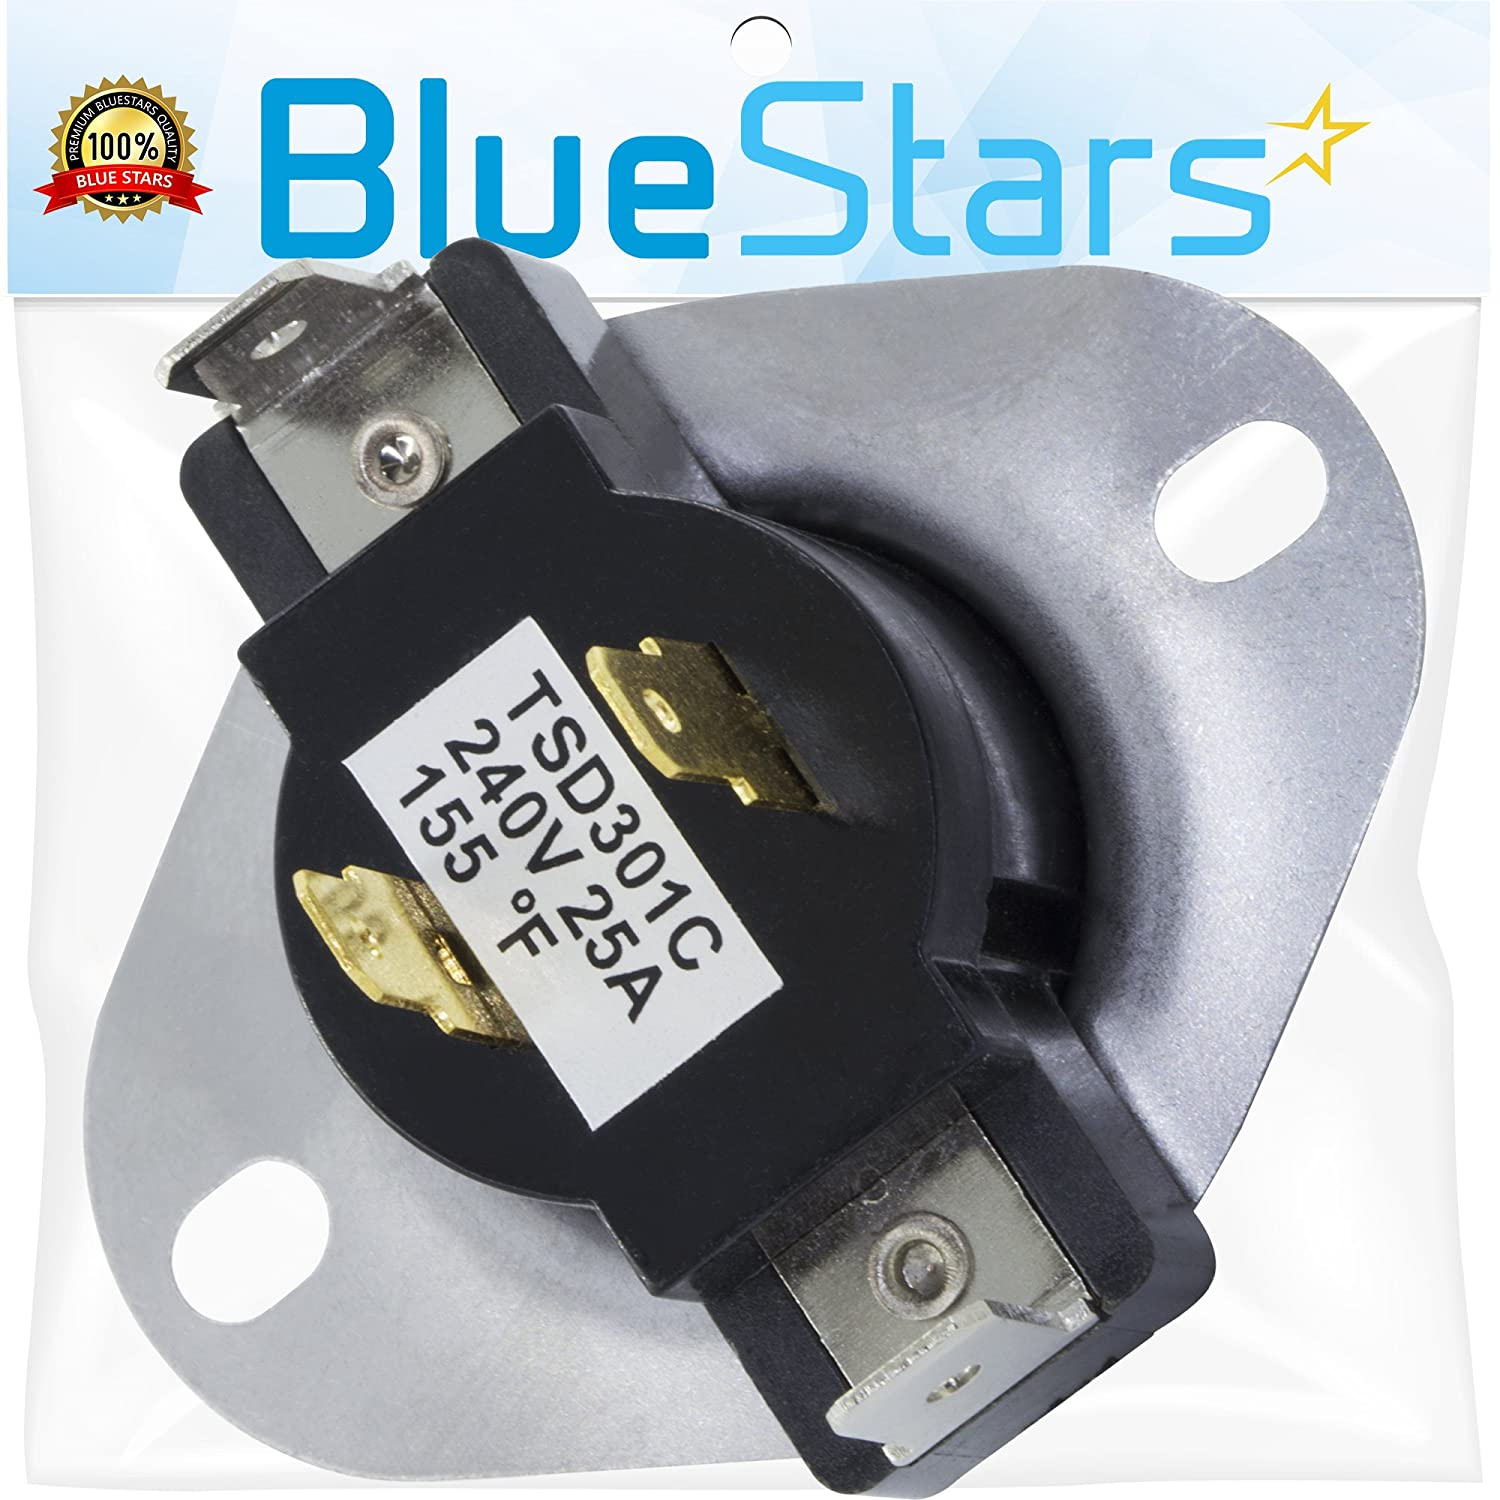 3387134 Cycling Thermostat Replacement Part by Blue Stars - Exact fit for Whirlpool Kenmore Maytag dryers - Replaces 3387135 3387139 WP3387134VP